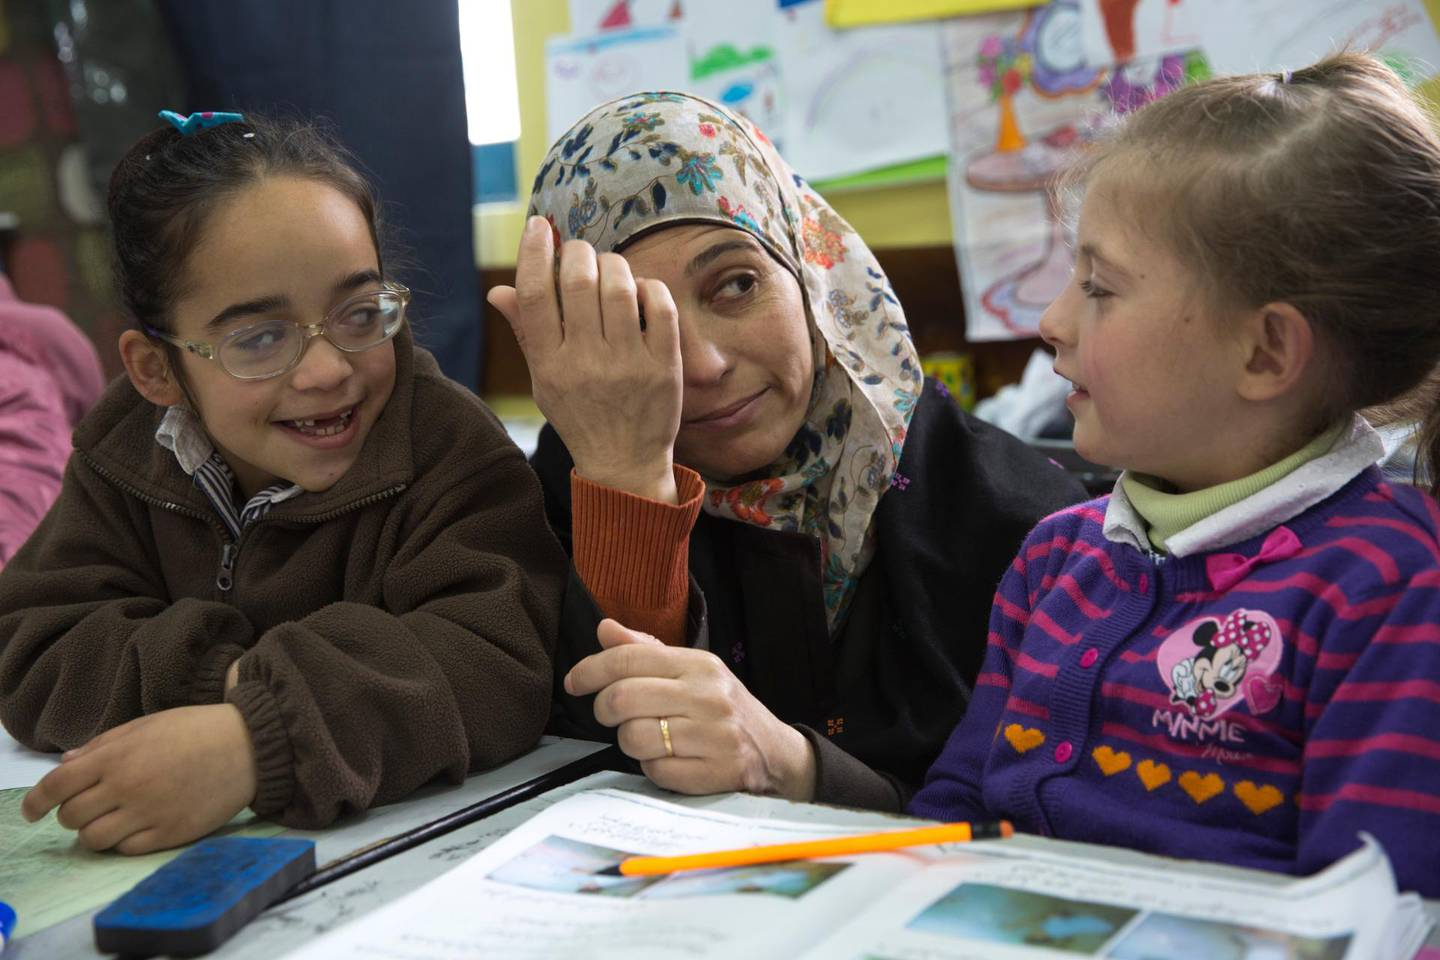 """Palestinian teacher Hanan al-Hroub as she teaches a religion class to her class of students that are 7 year-old on her first day back to teach at the  Samiha Khalil school in al-Bireh, just outside Ramallah on March 20,2016. Hanan was awarded the $1M Global Teacher Prize in Dubai. Hroub uses a technique she calls """"Play and Learn""""  she developed and  promotes no to violence .(Photo by Heidi Levine For The National). *** Local Caption ***  Levine Pal Teacher sty38.JPG"""